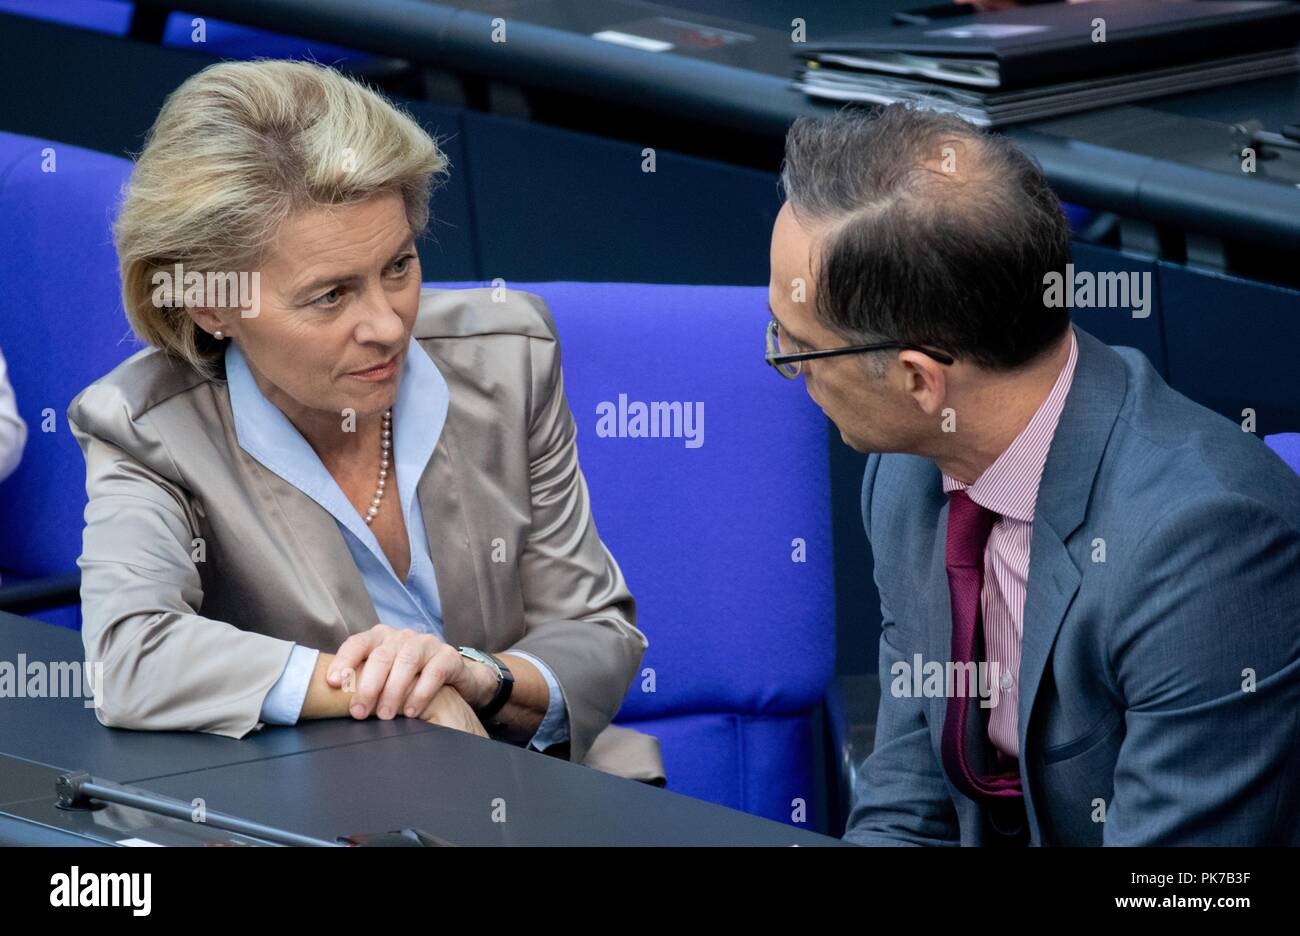 Berlin, Germany. 11 September 2018, Berlin: Ursula von der Leyen (CDU), Federal Minister of Defence, and Heiko Maas (SPD), Foreign Minister, will participate in the plenary session in the German Bundestag. The main topic of the 47th session of the 19th legislative period is the Federal Government's draft budget 2019 and the federal budget 2018 to 2022. Photo: Bernd von Jutrczenka/dpa Credit: dpa picture alliance/Alamy Live News - Stock Image